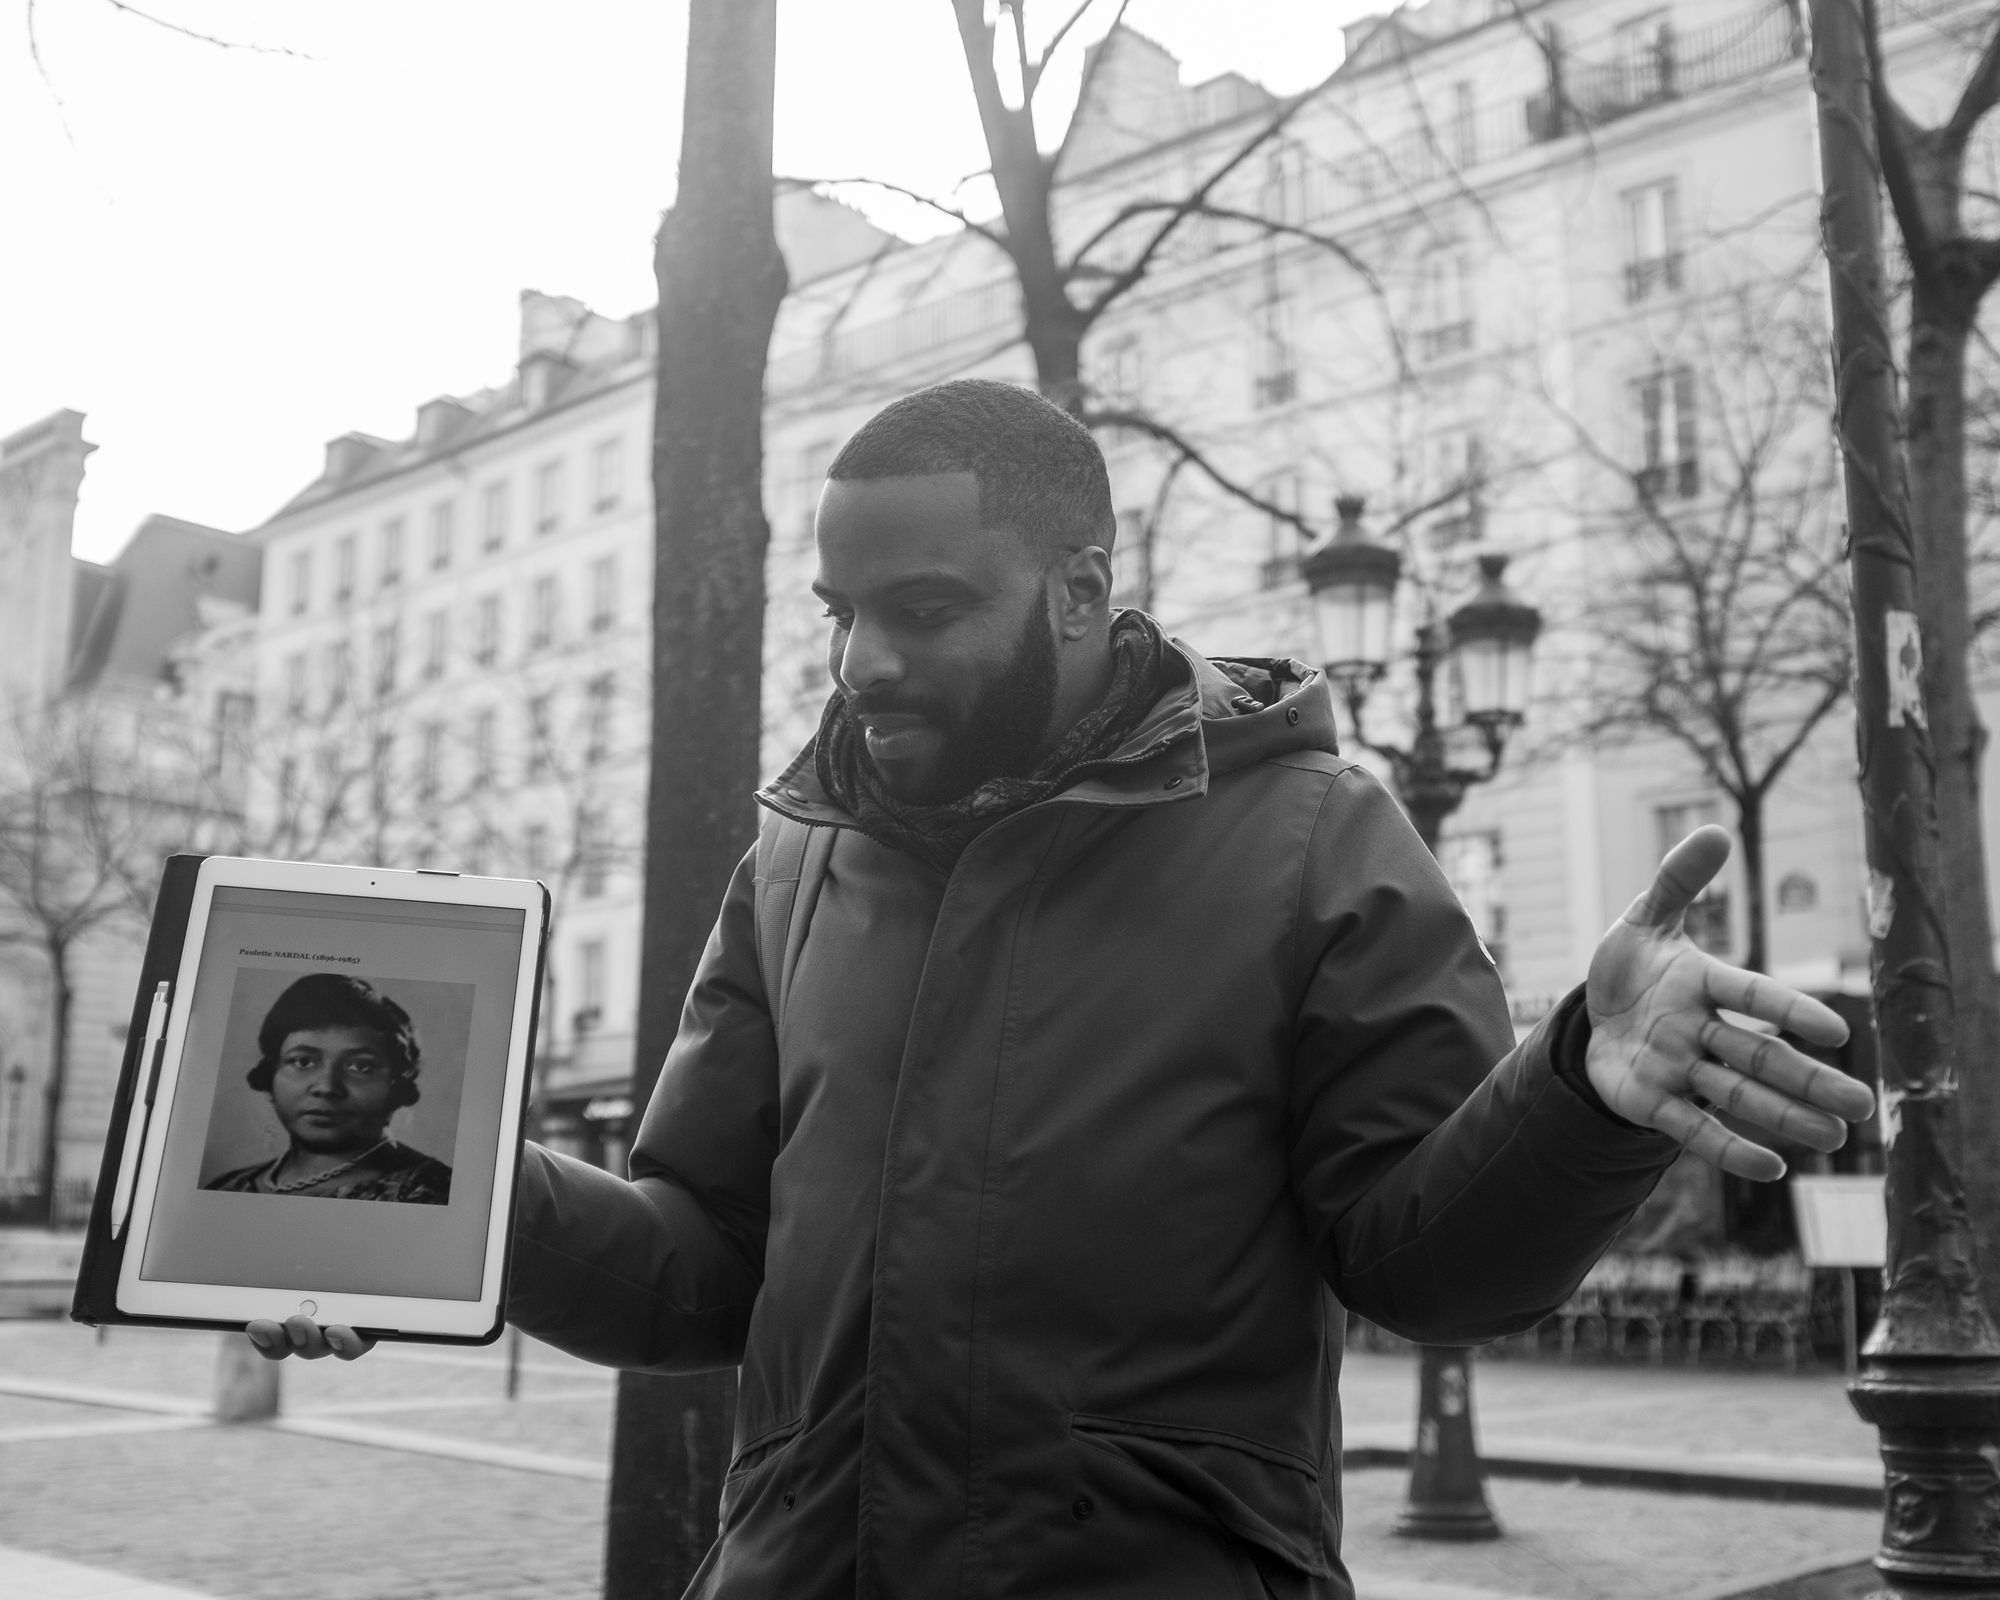 Black and white photograph of Kévi Donat. He's standing across the street from an old building, presumably in Paris, and he's facing the camera with arms outstretched. In his right hand is a tablet with the picture of a Black woman. He's looking down at the tablet.